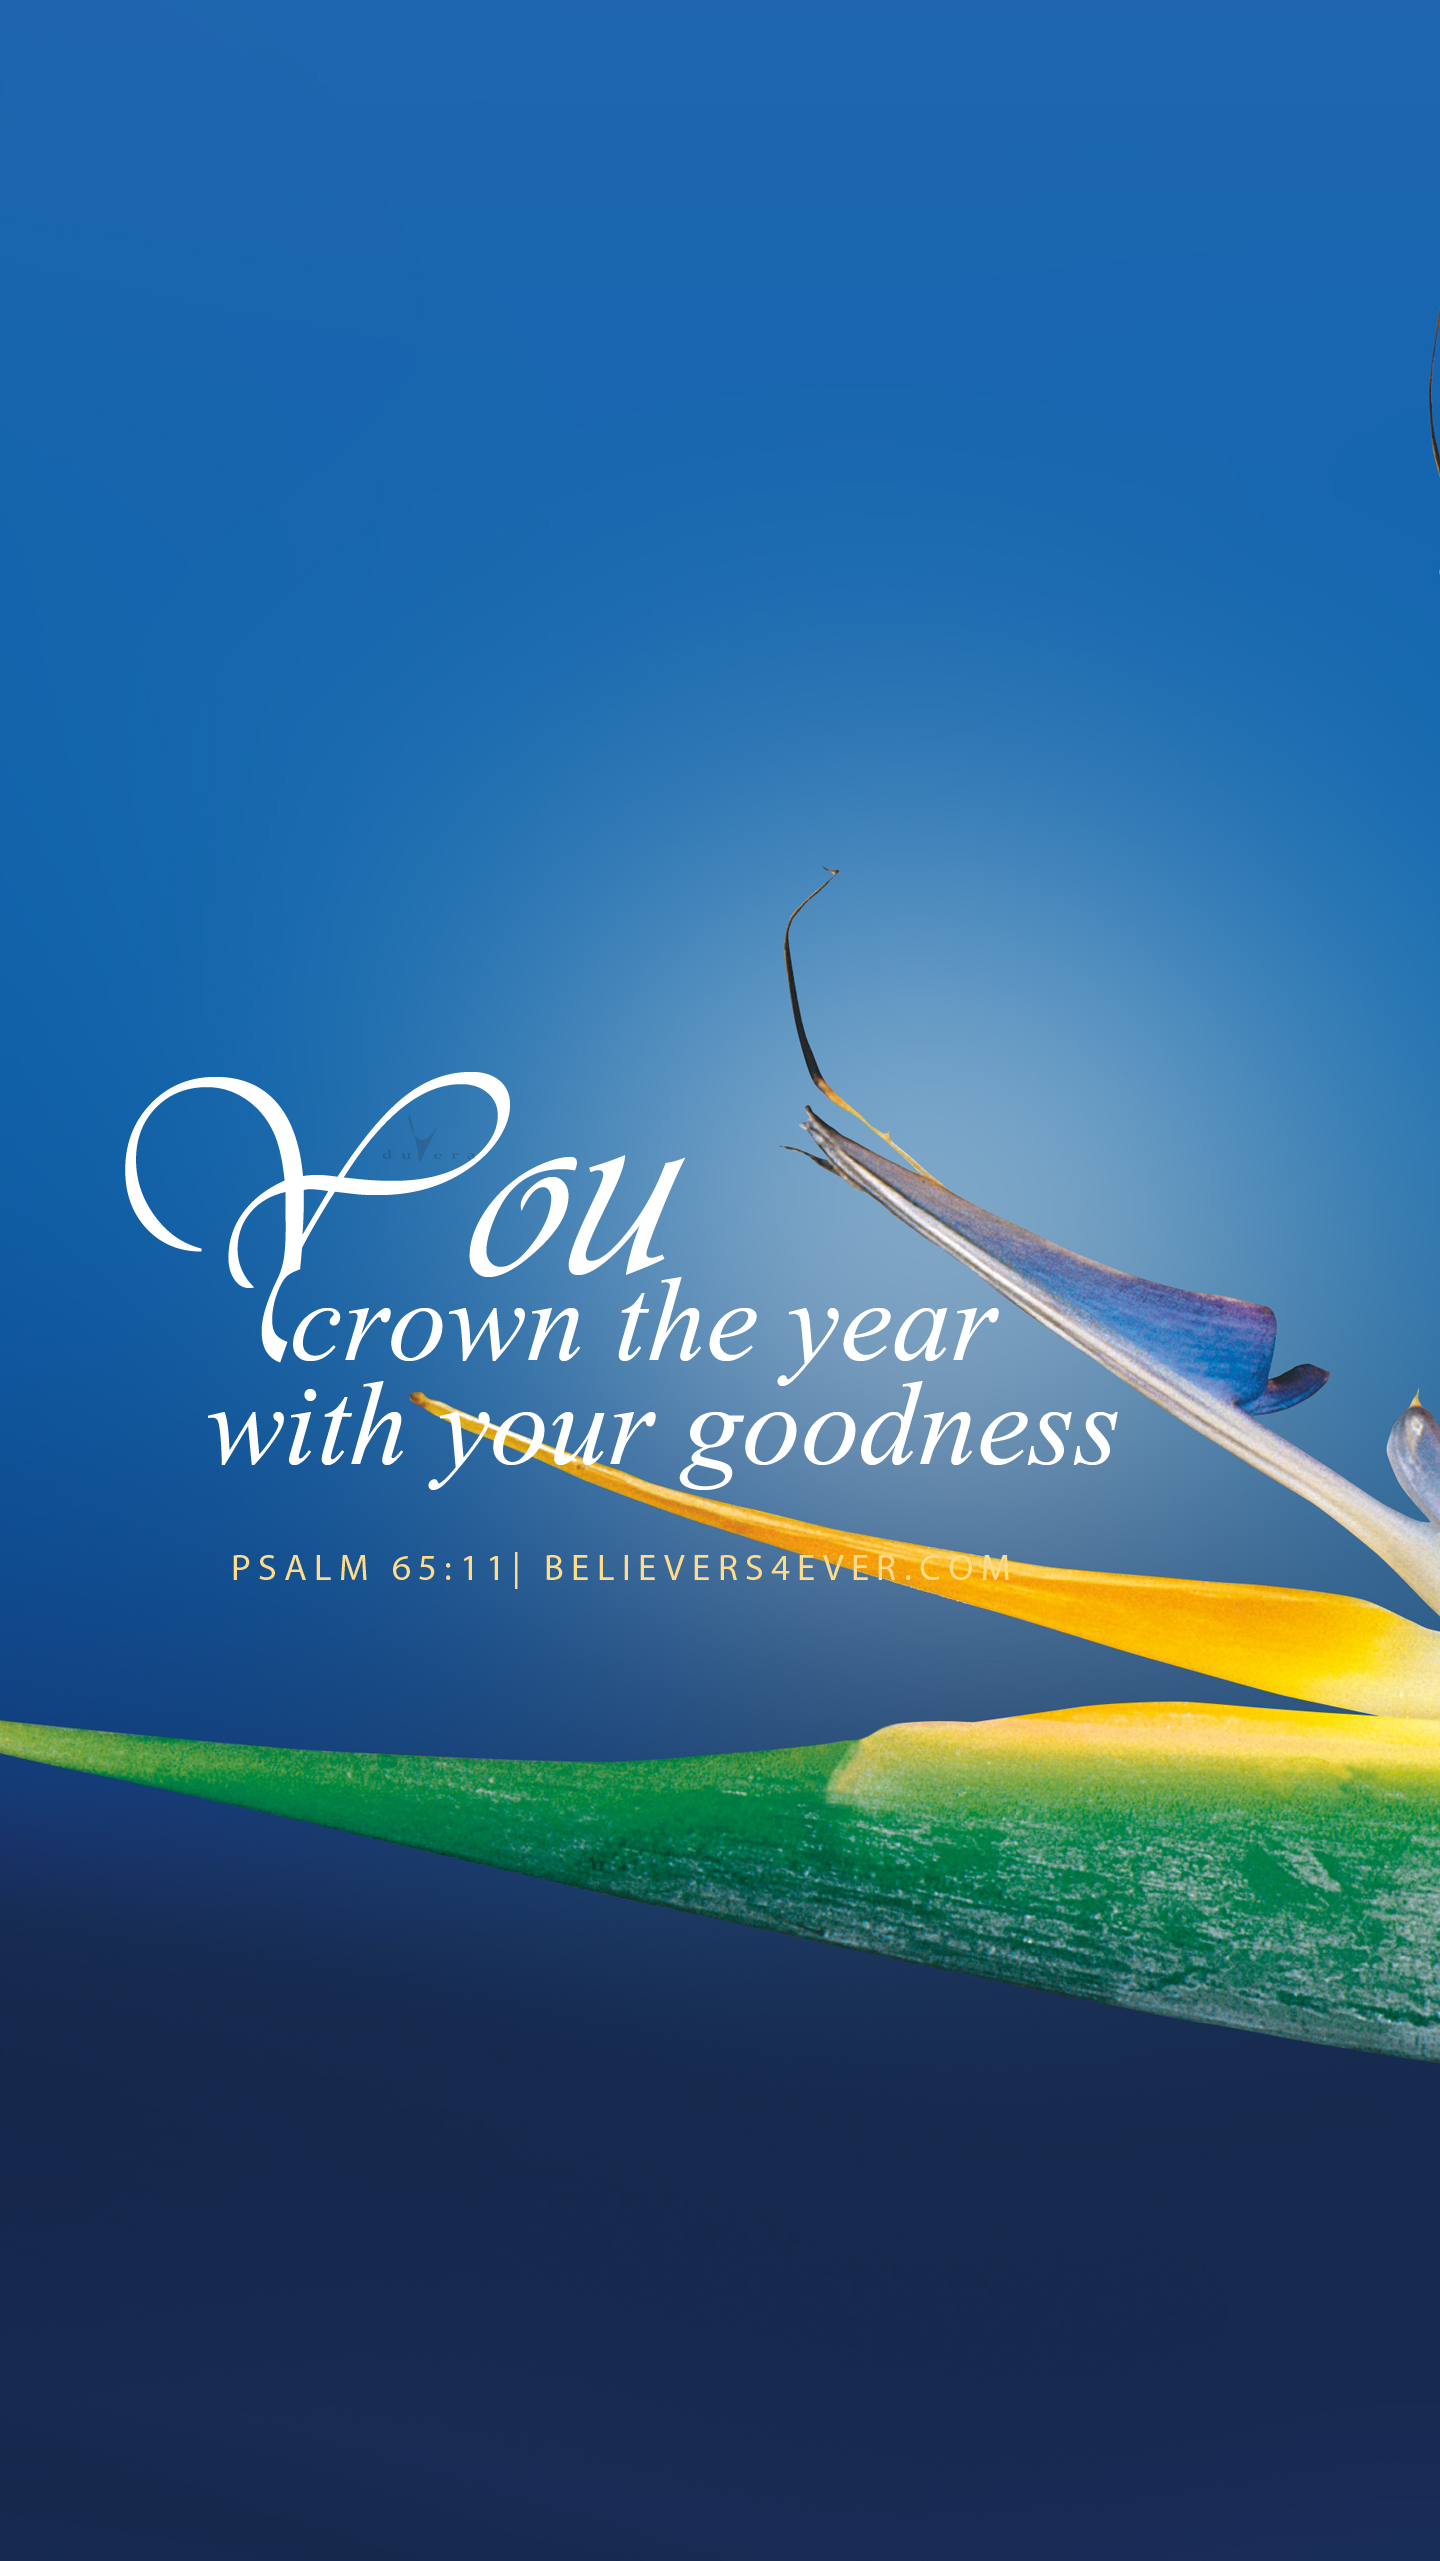 You crown the year  Christian facebook cover, Biblical verses